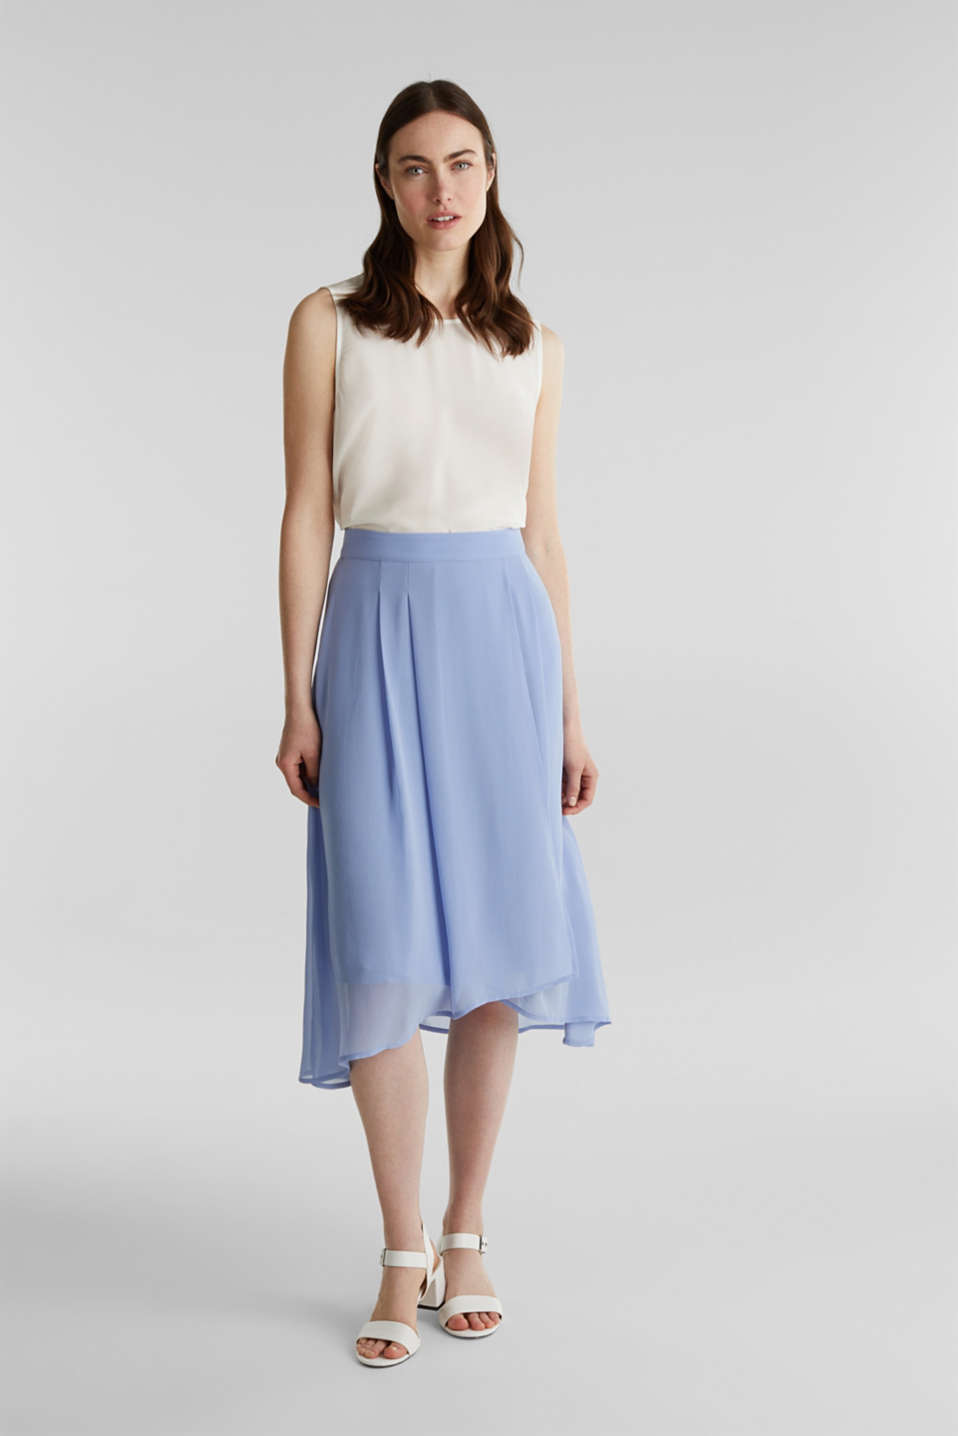 Chiffon skirt with a high-low hem, BLUE LAVENDER, detail image number 1